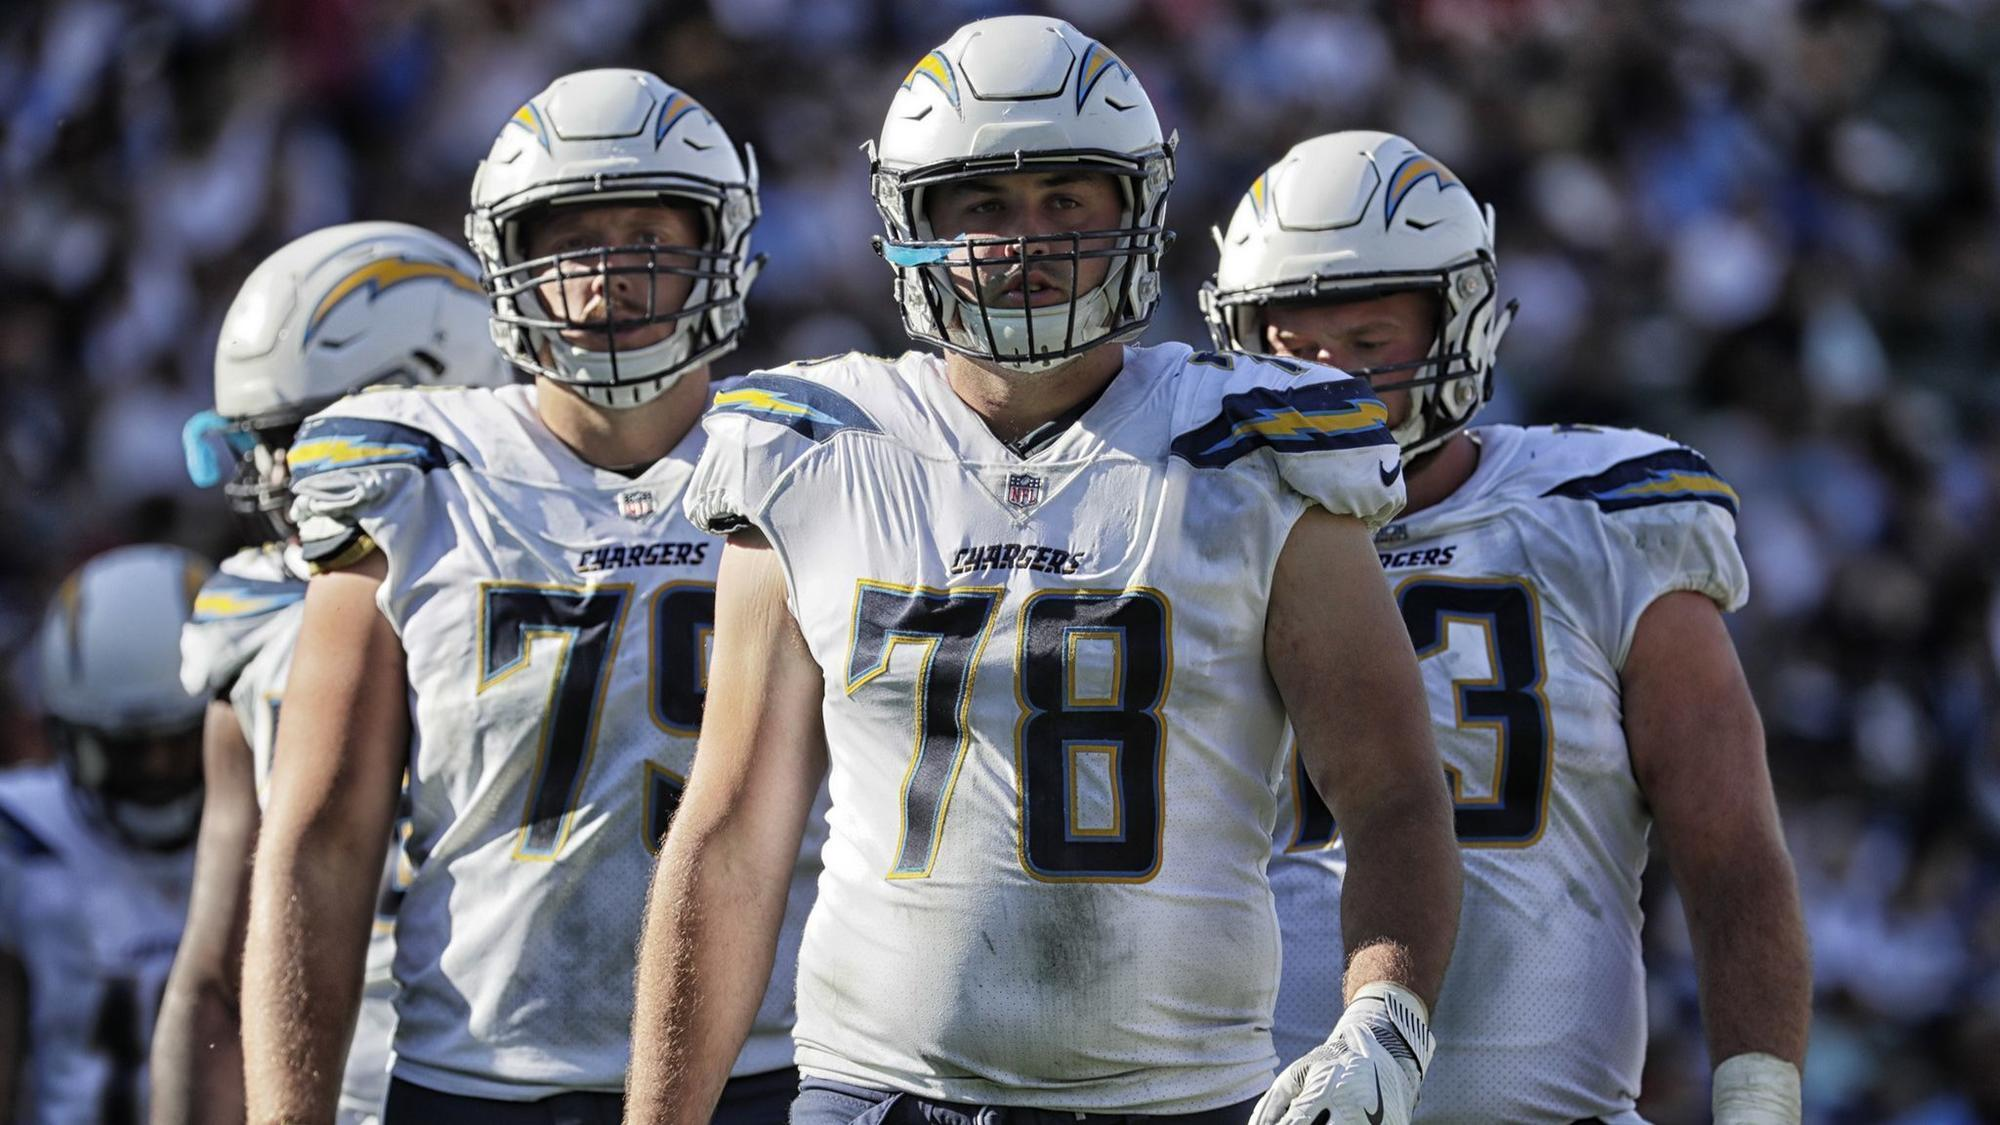 La-sp-chargers-training-camp-20180806